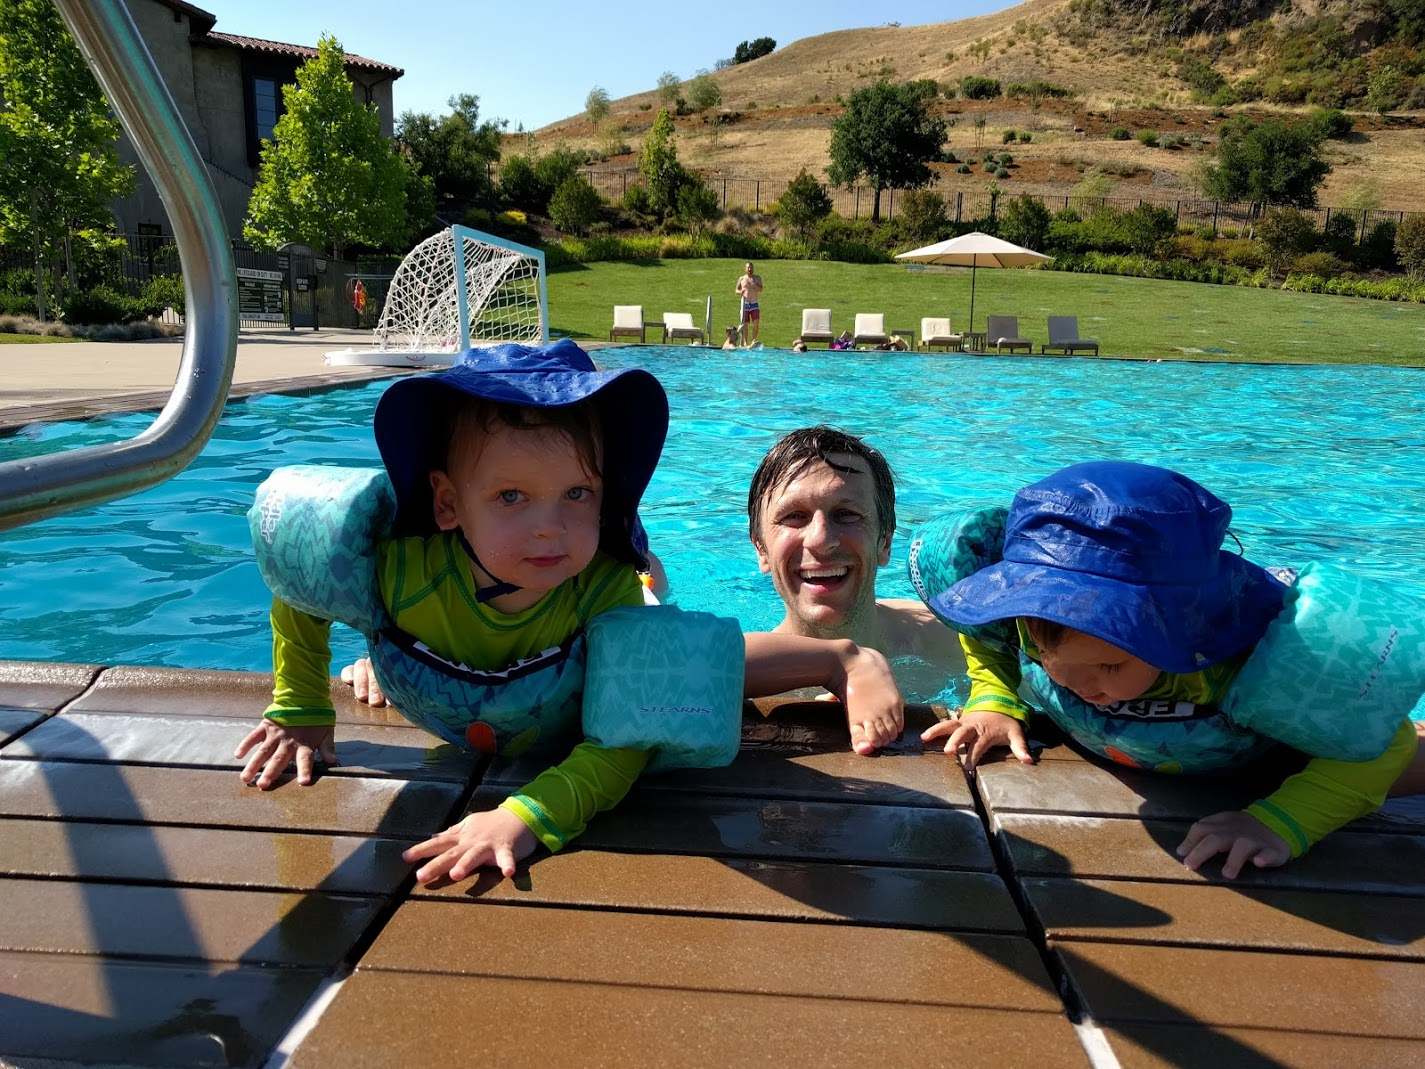 puddle jumpers and pool suppliesdle jumpers and pool supplies